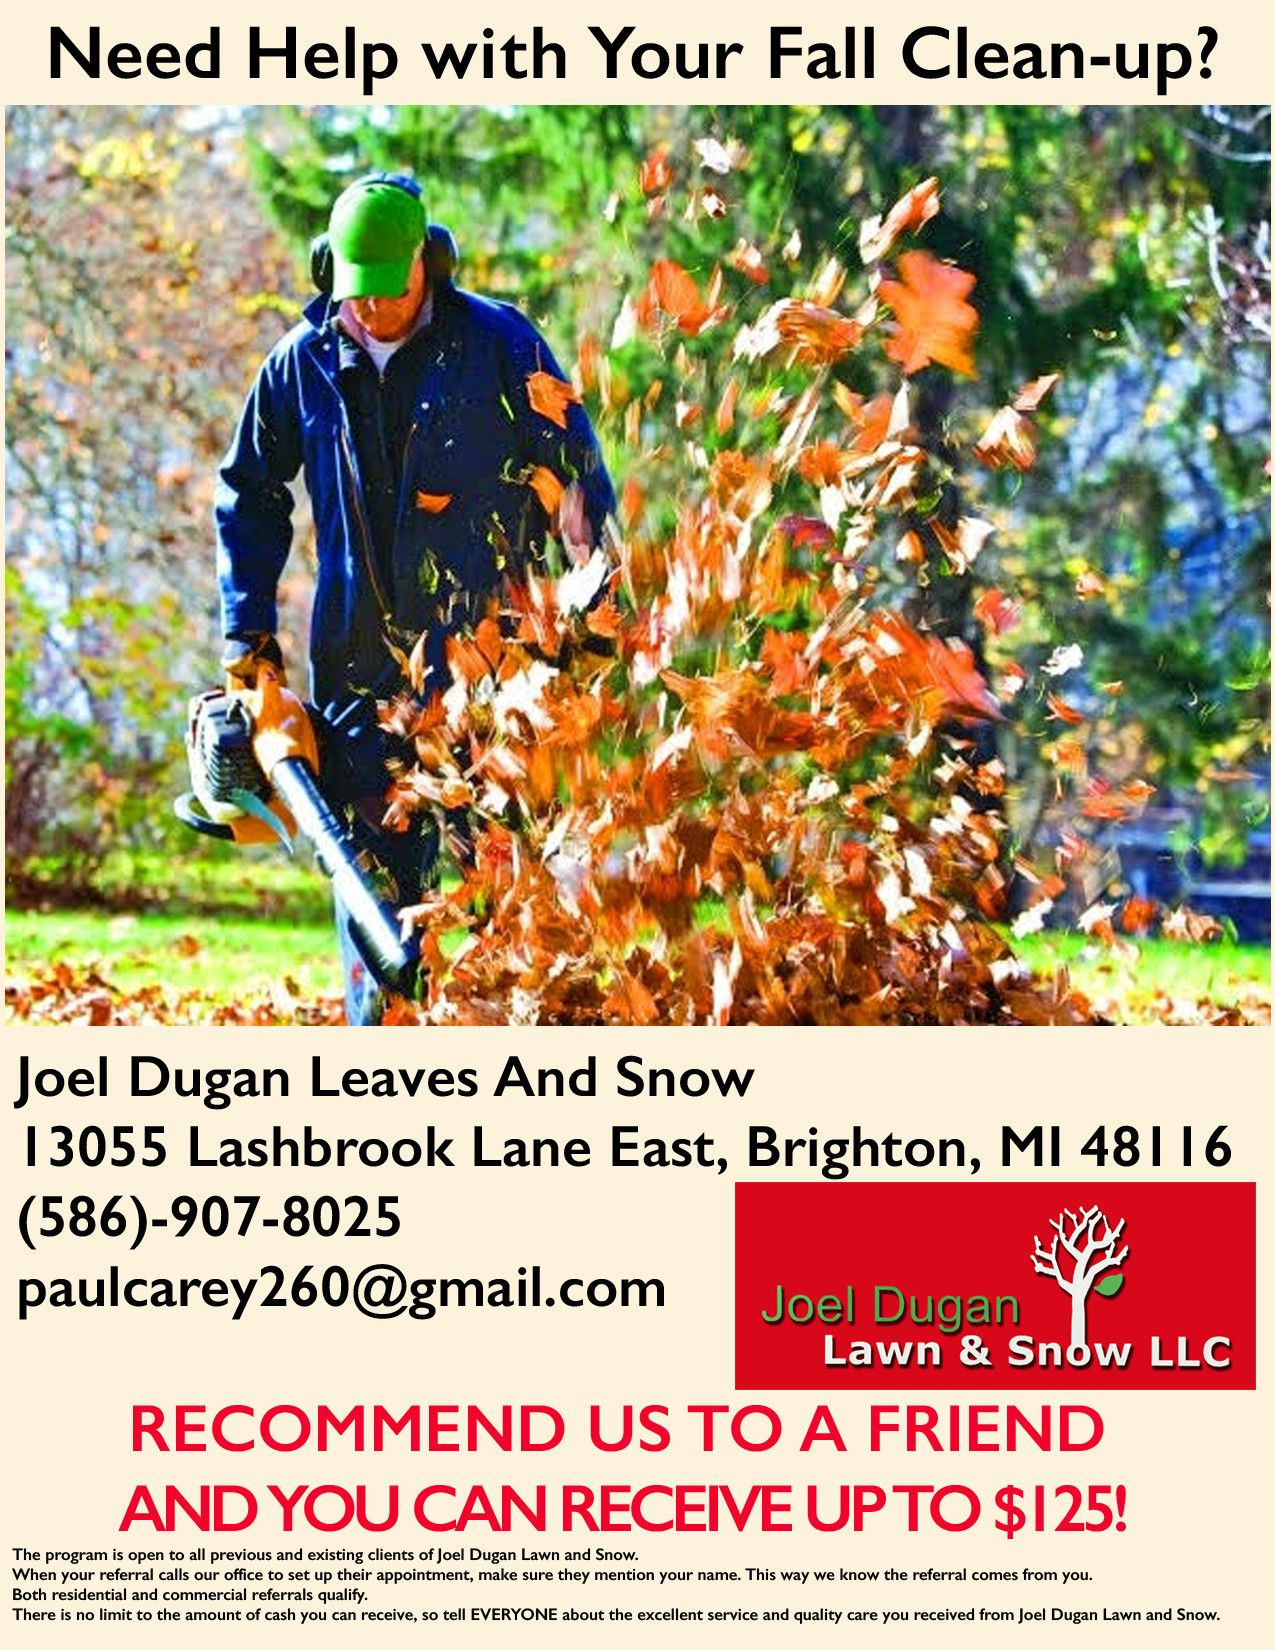 Pin By Megan Land On Landscape Markwting Fall Clean Up Fall Cleaning Clean Up Fall clean up flyer template